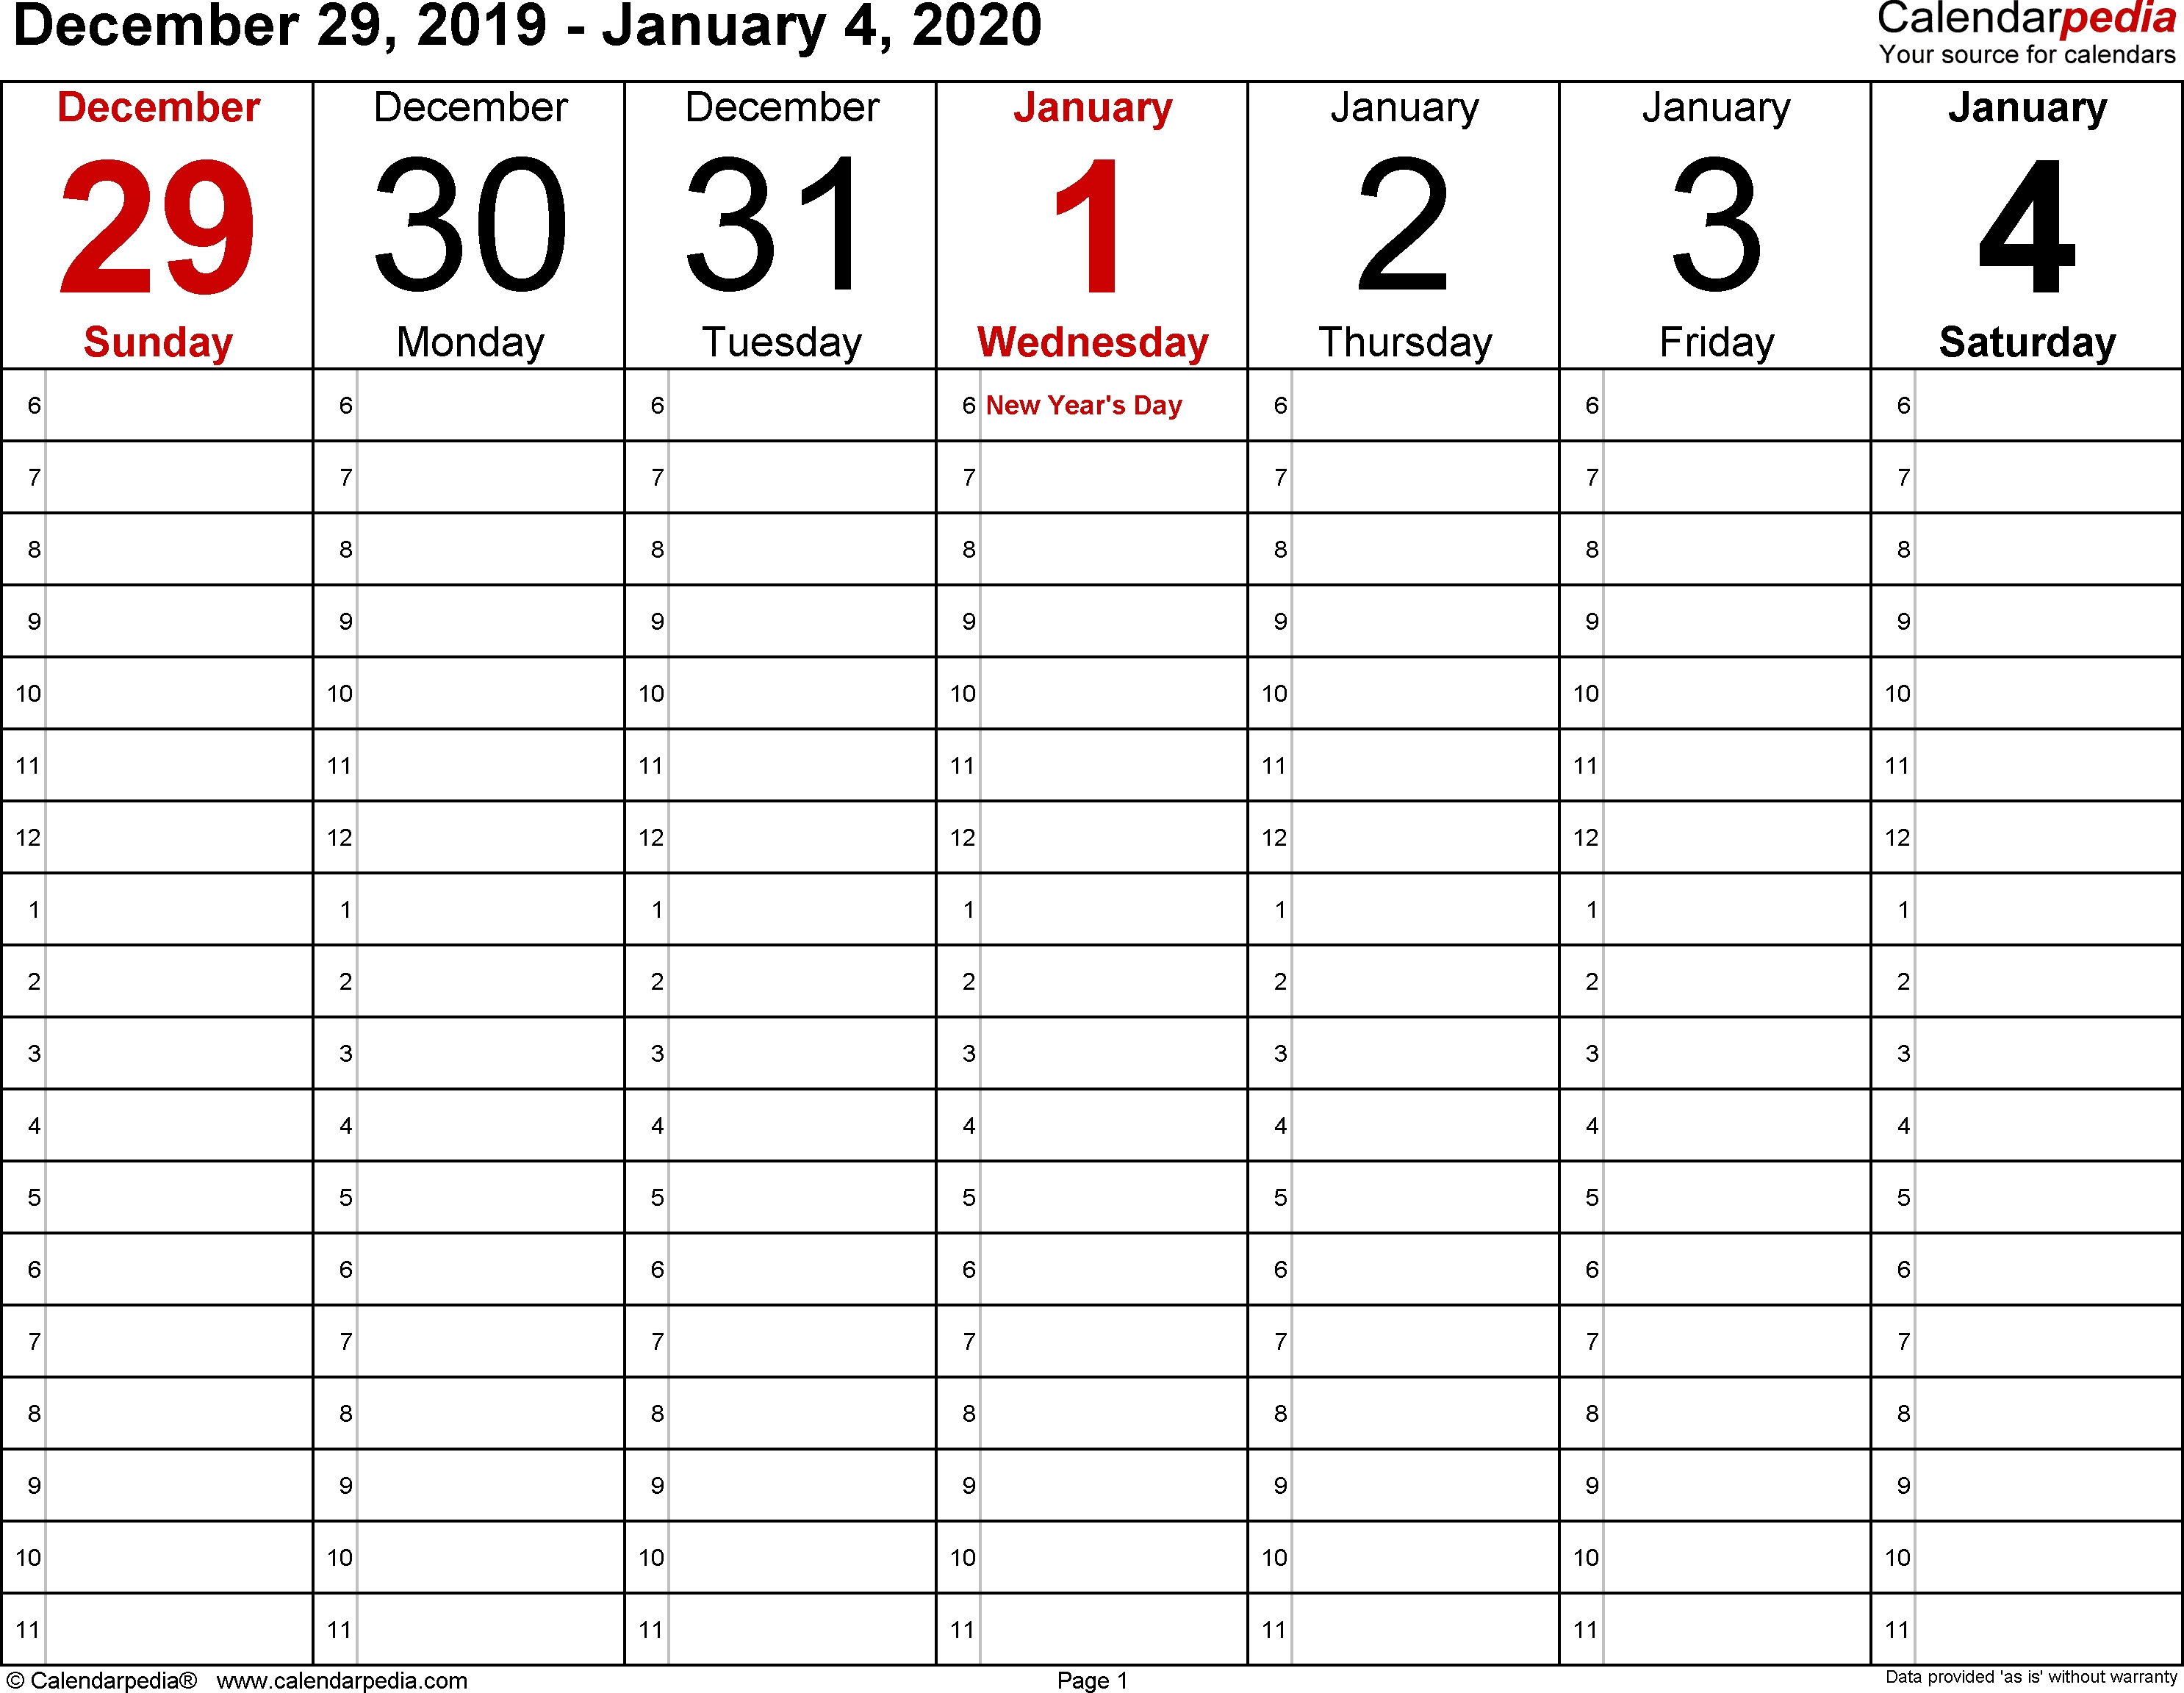 Weekly Calendar 2020 For Pdf - 12 Free Printable Templates with regard to Free Yearly 5.5 X 8.5 Calendar 2020